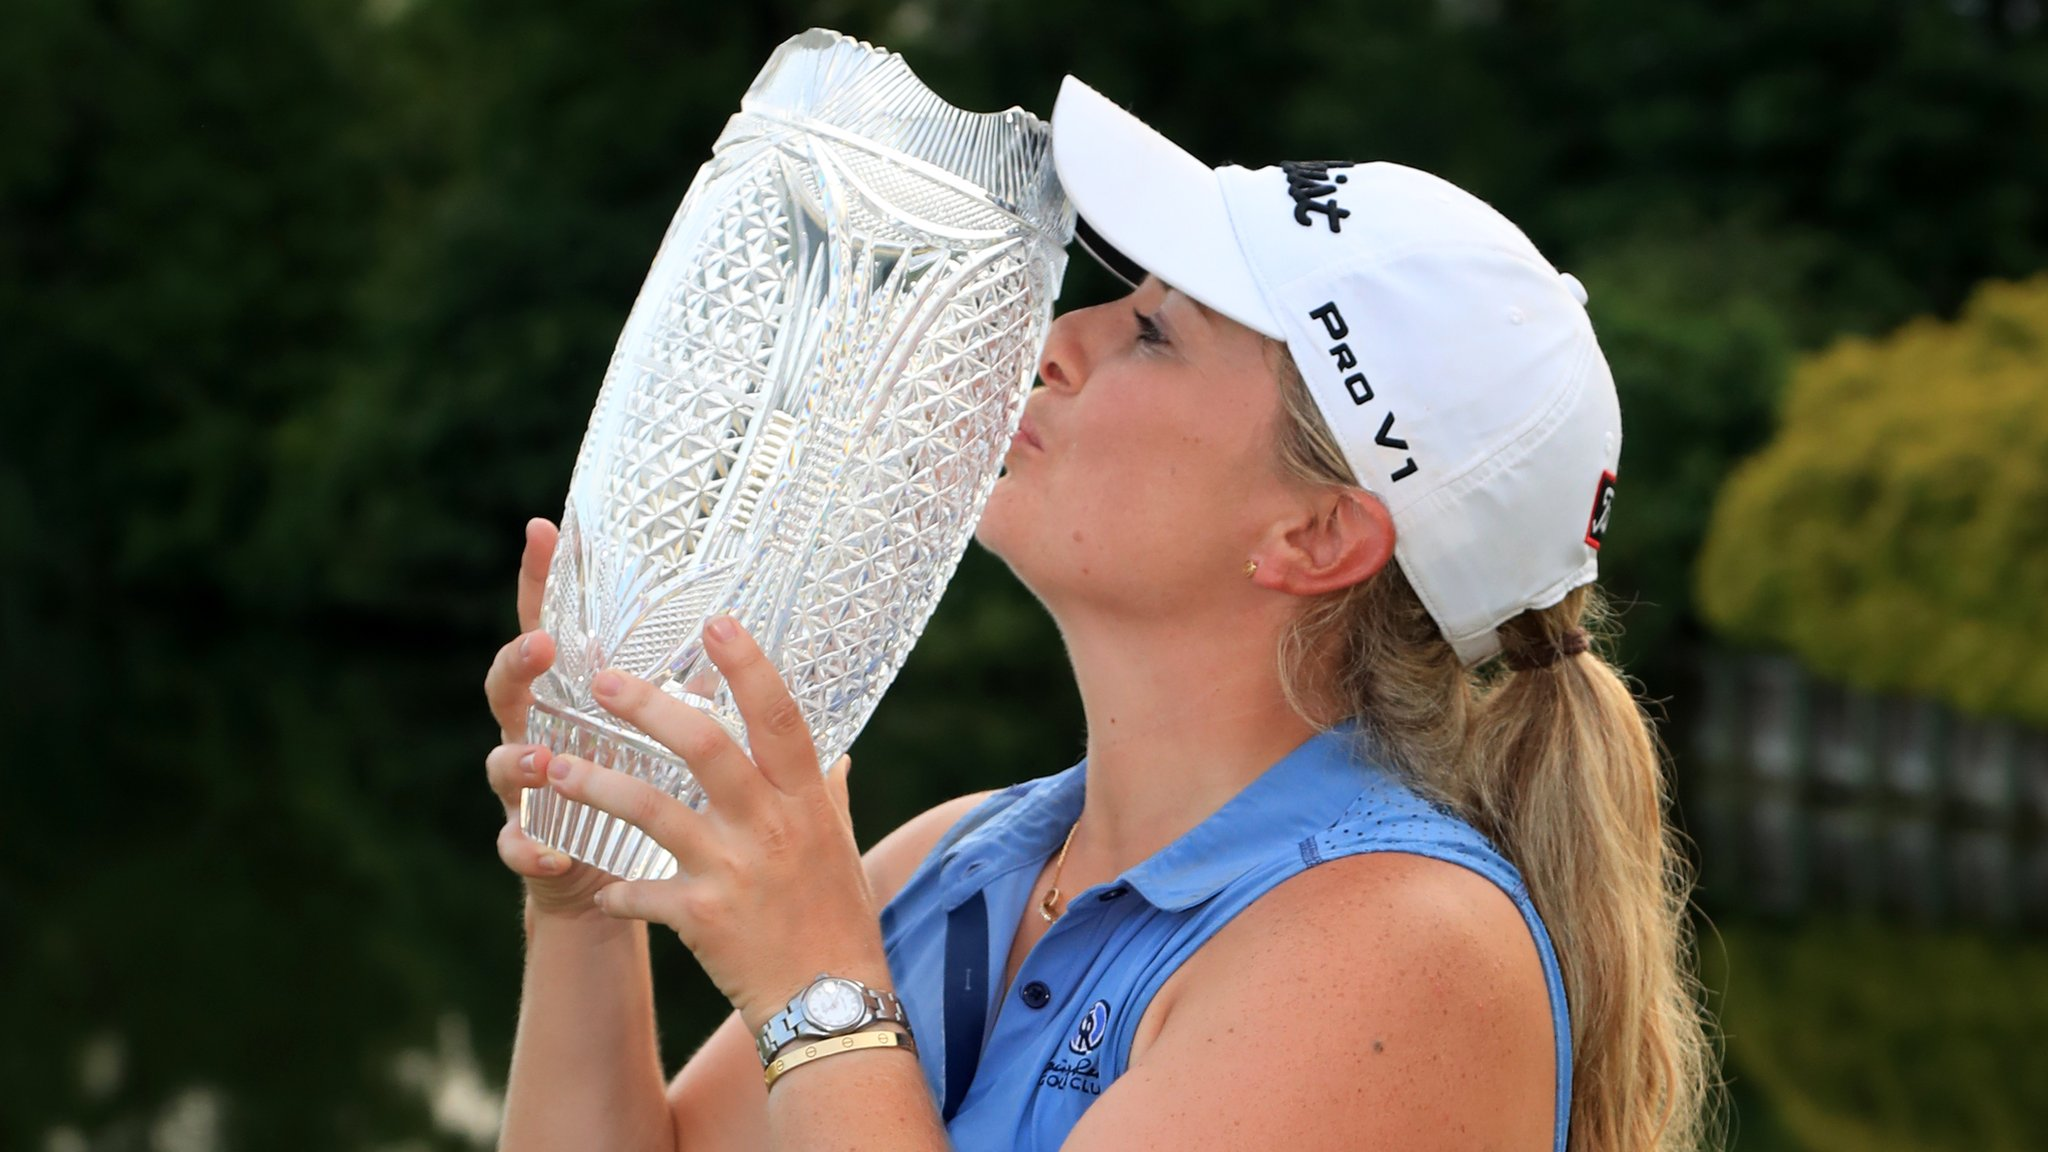 Pure Silk Championship: Bronte Law wins first LPGA Tour title